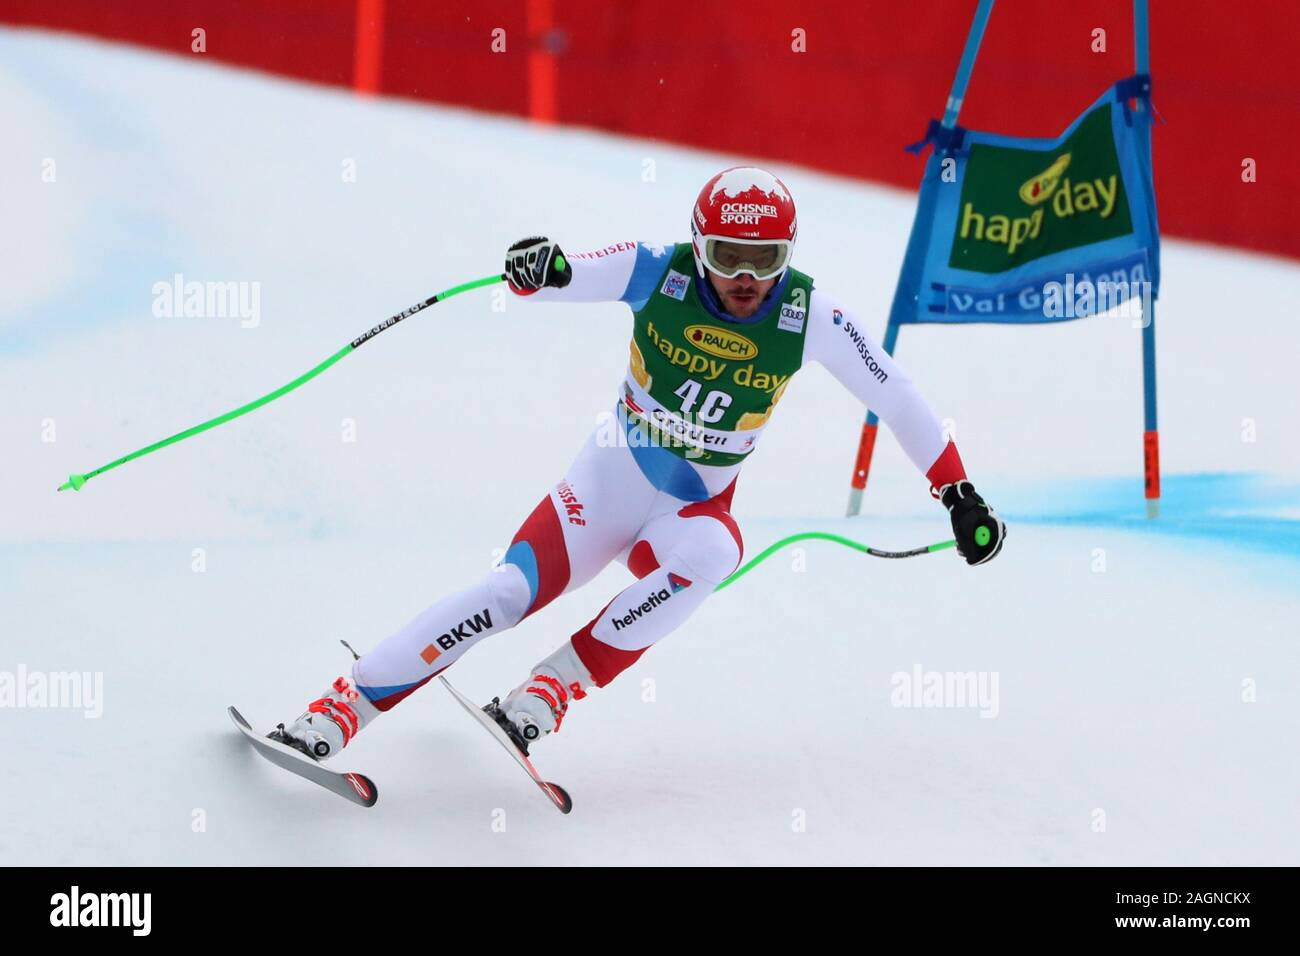 Alpine Ski World Cup FIS in Val Gardena, Italy on December 20, 2019, Super-G Men event, - Editorial Use Credit: Action Plus Sports Images/Alamy Live News Stock Photo